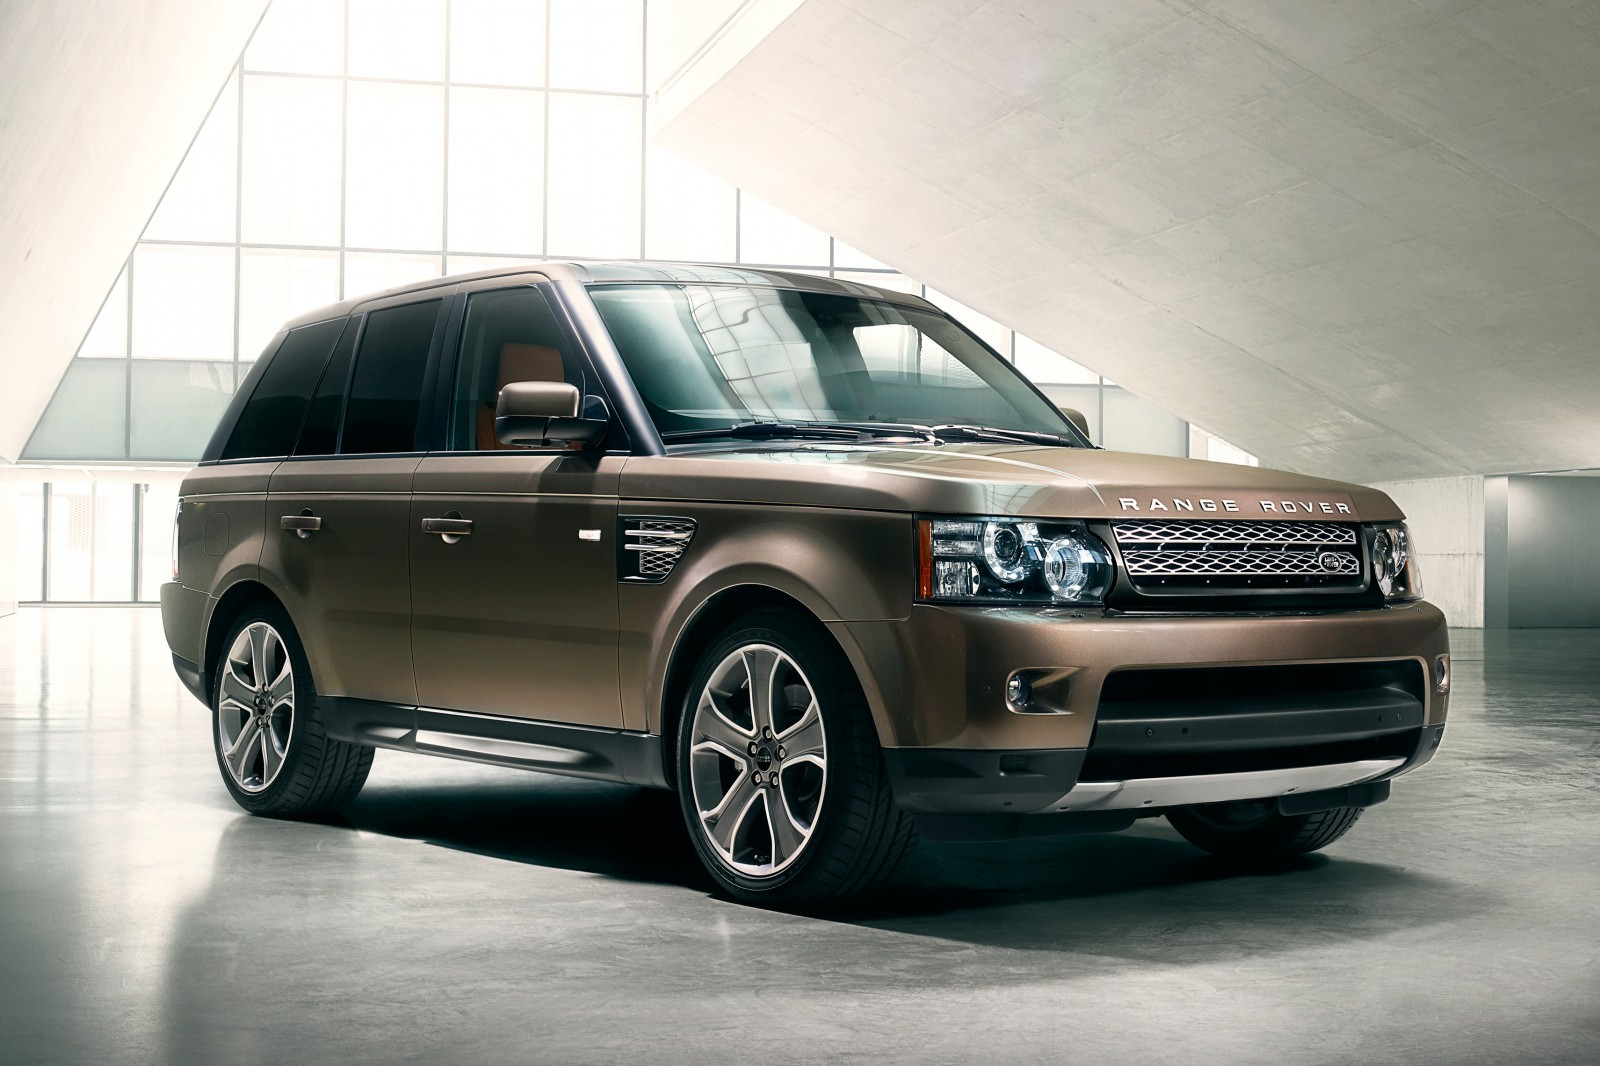 2013 land rover range rover sport image 17. Black Bedroom Furniture Sets. Home Design Ideas